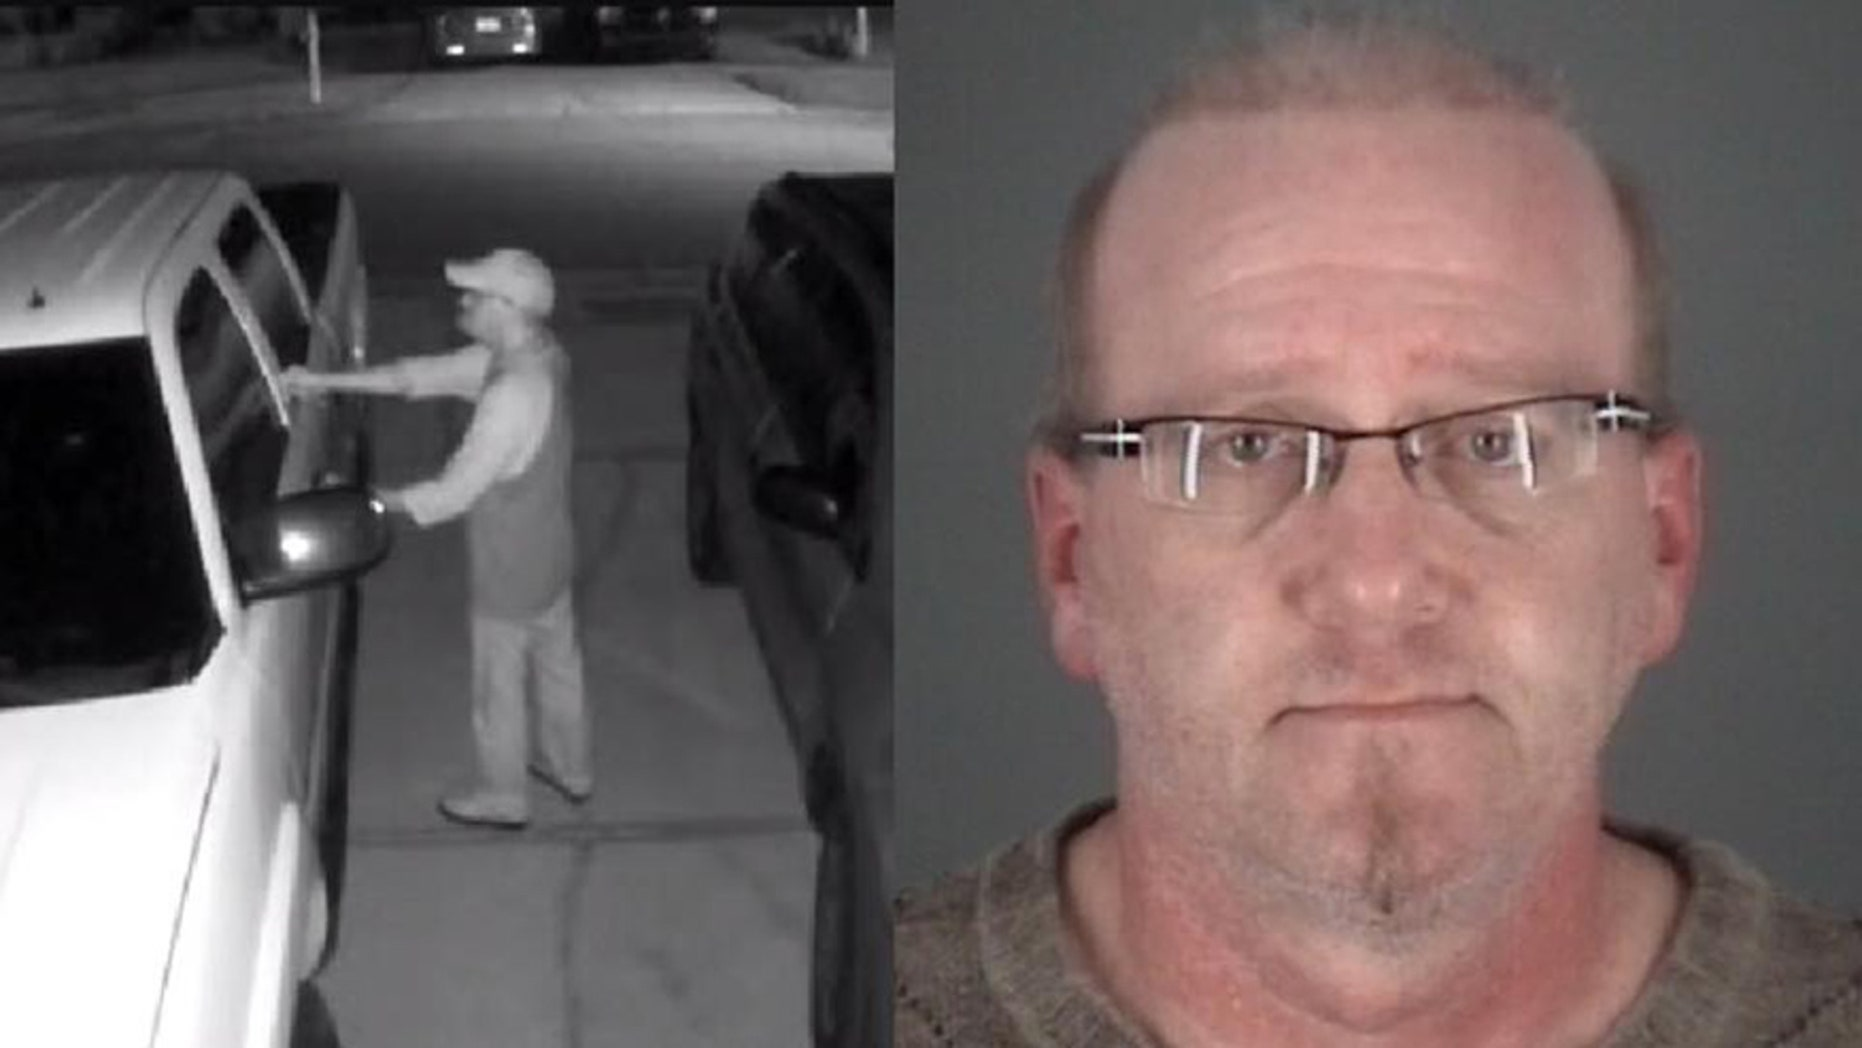 Stephen Titlan, 49, tried to burglarize a vehicle that was full of cops in Tampa, officials said.